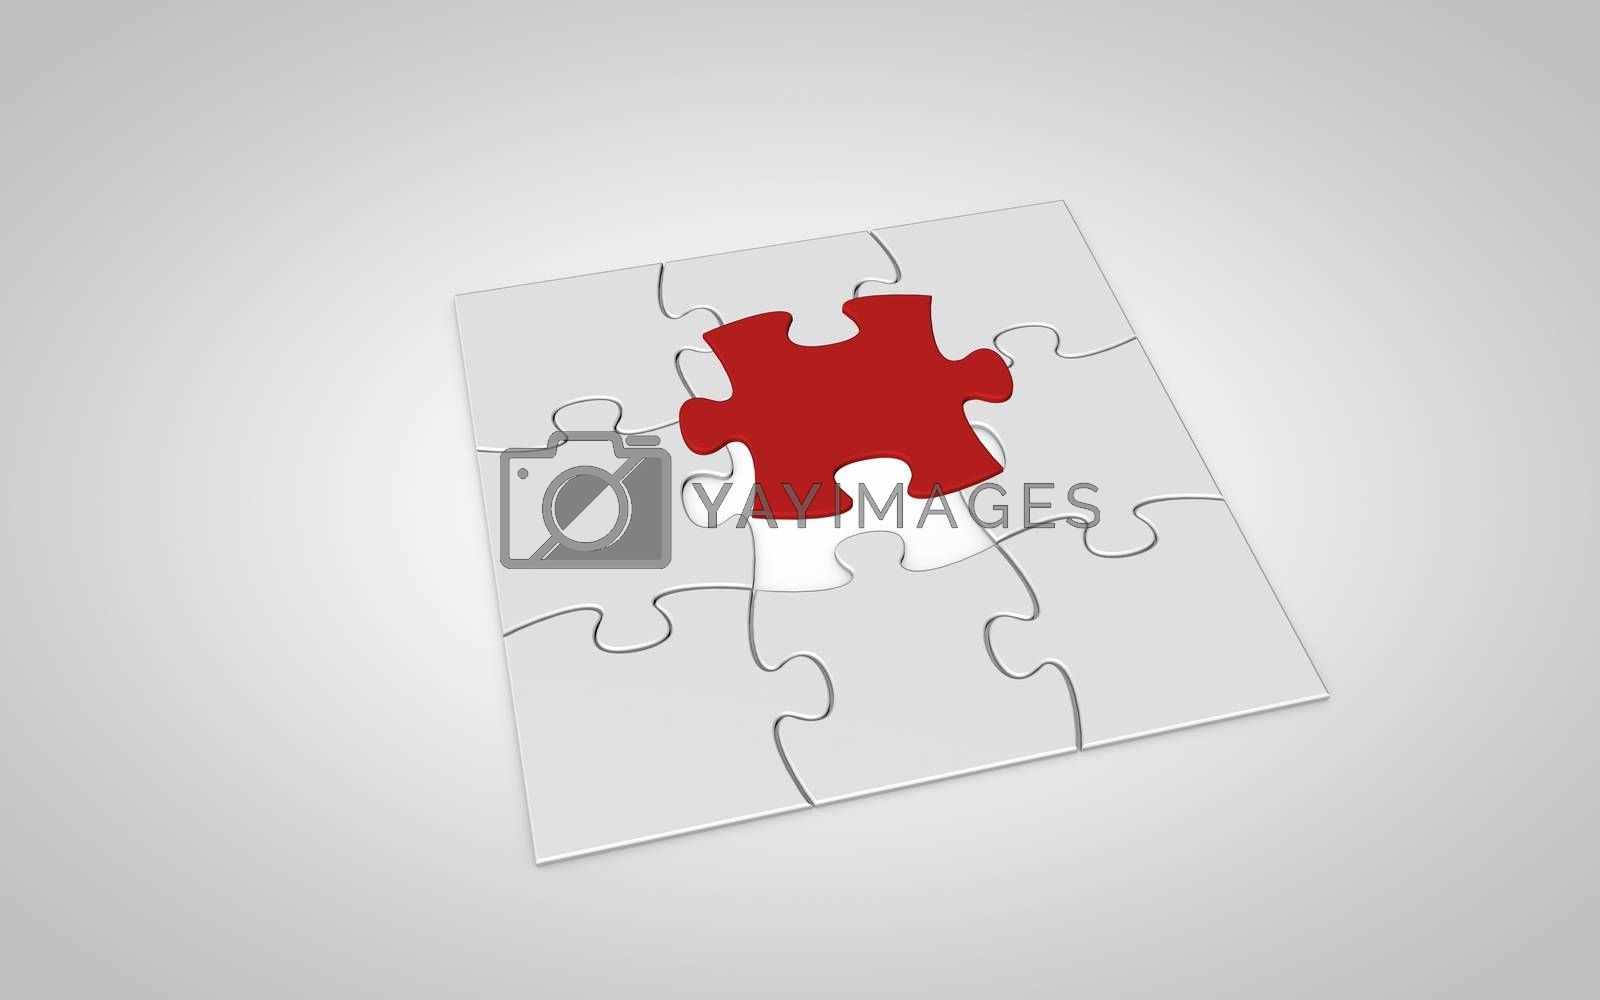 Nine puzzle pieces falling from top to white background. Final red puzzle piece falls into place.